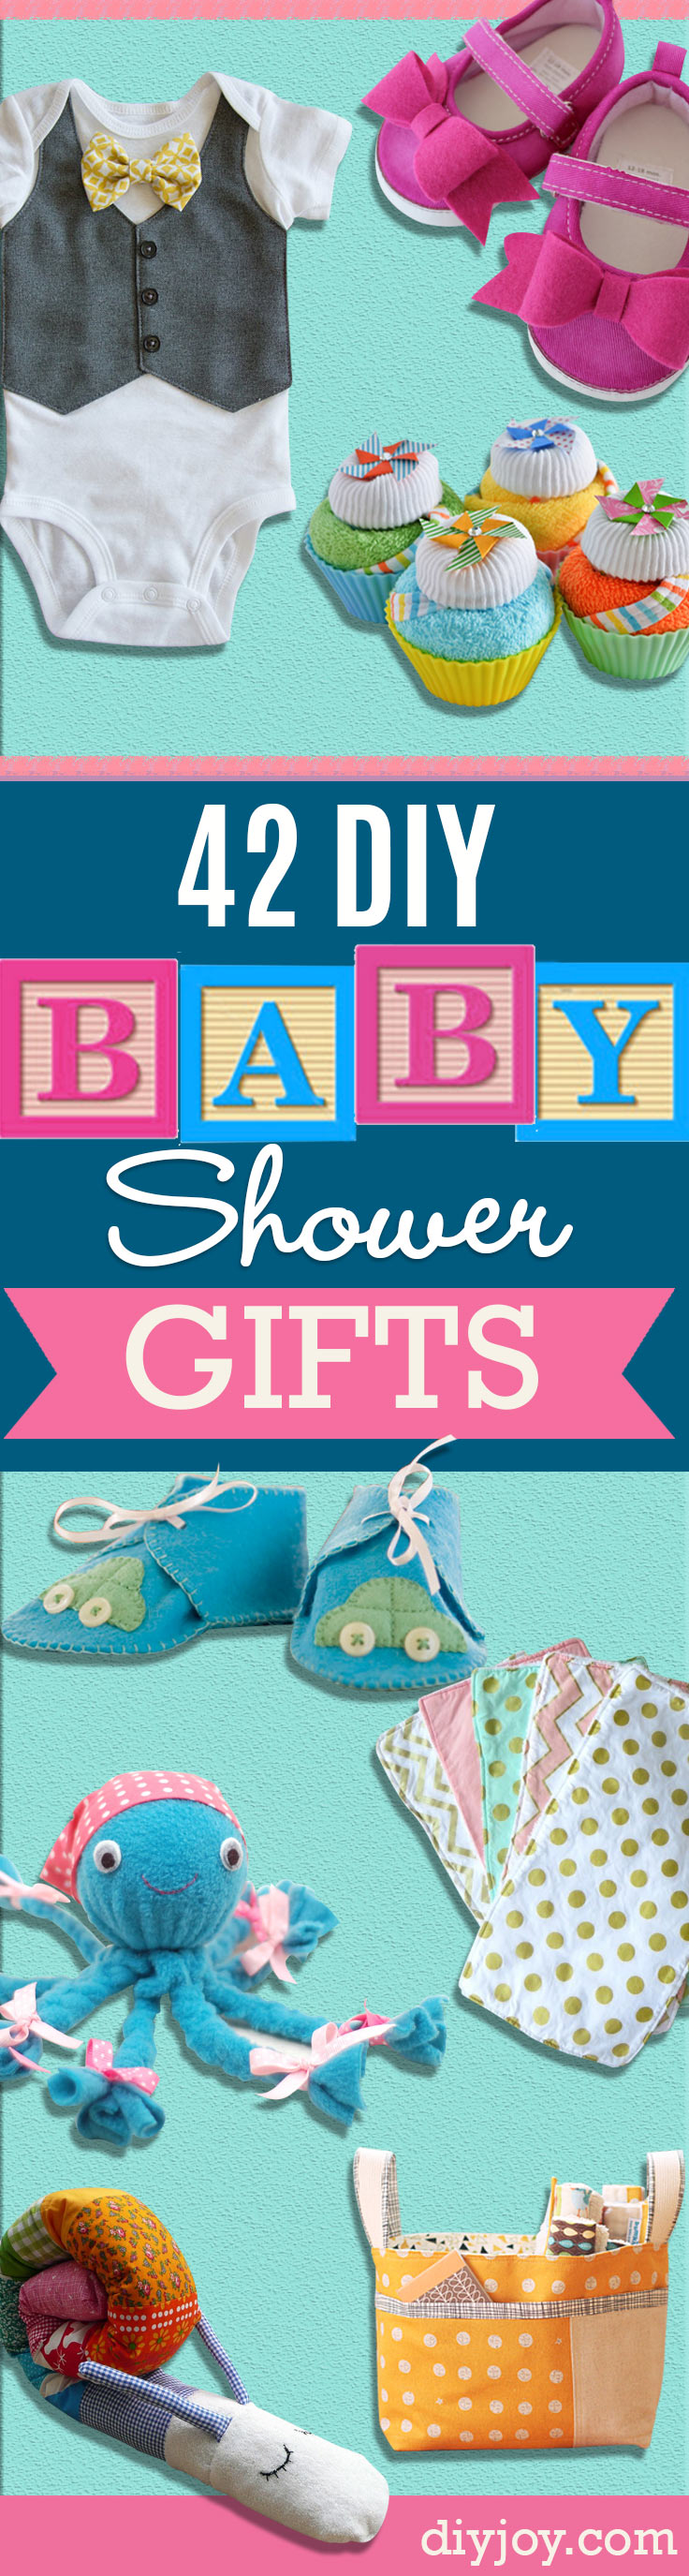 Best DIY Baby Shower Gifts - Homemade Baby Shower Presents and Creative, Cheap Gift Ideas for Boys and Girls - Unique Gifts for the Mom and Dad to Be - Blankets, Baskets, Burp Cloths and Easy No Sew Projects